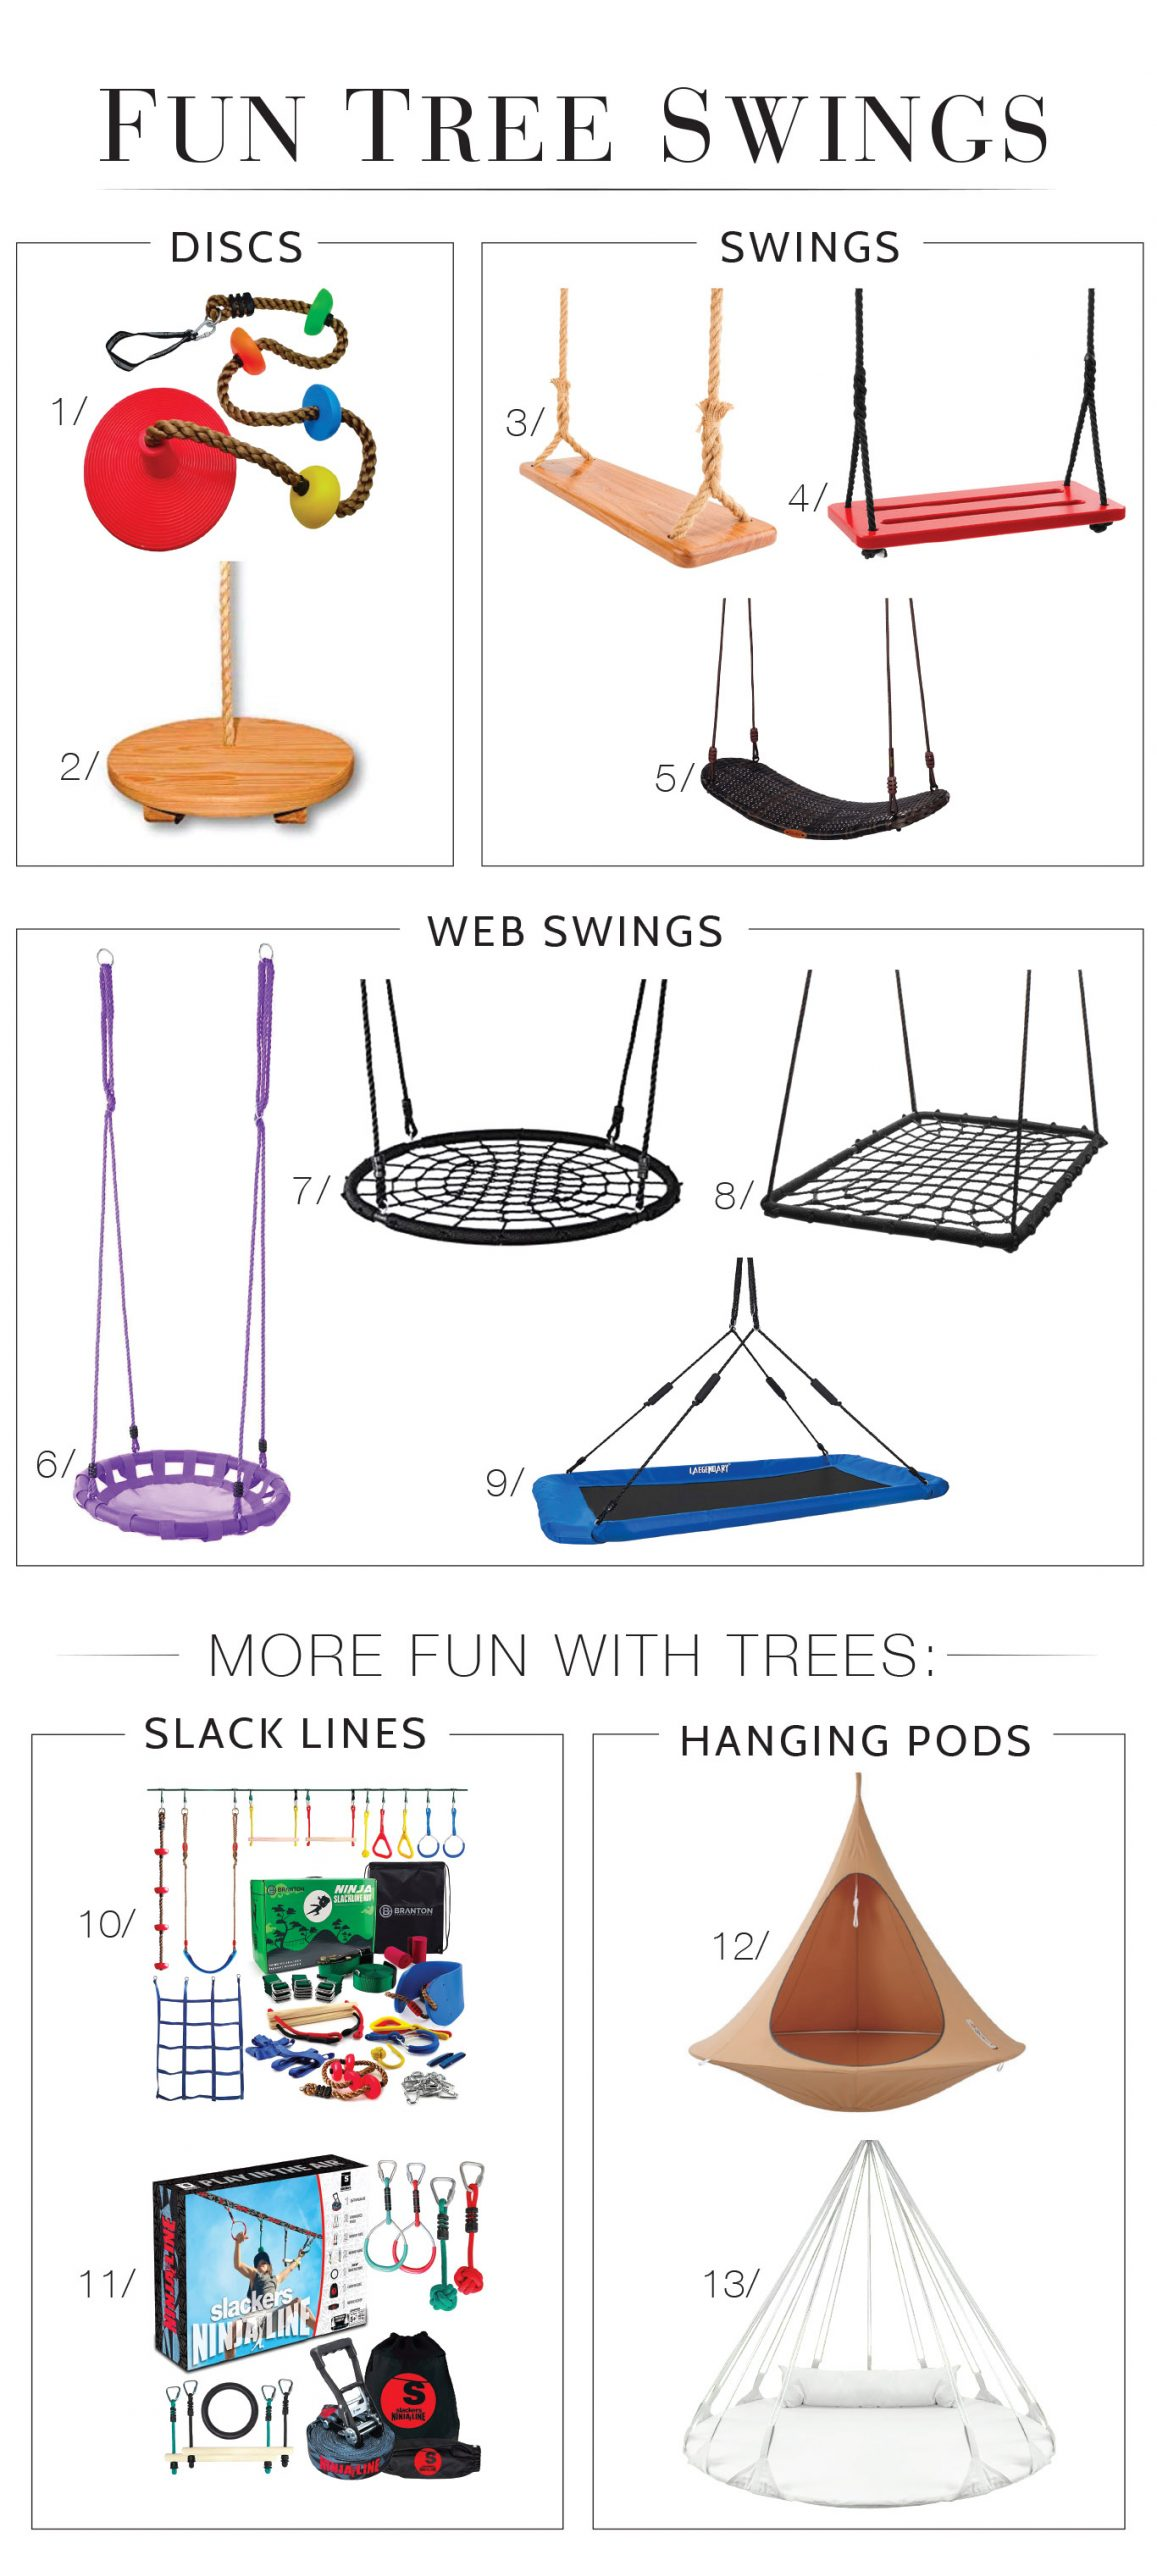 Outdoor fun at home is a must. 1 way to get there: tree swings, webs, discs & hanging pods for the yard. For kids & adults, these 10 are on our list.